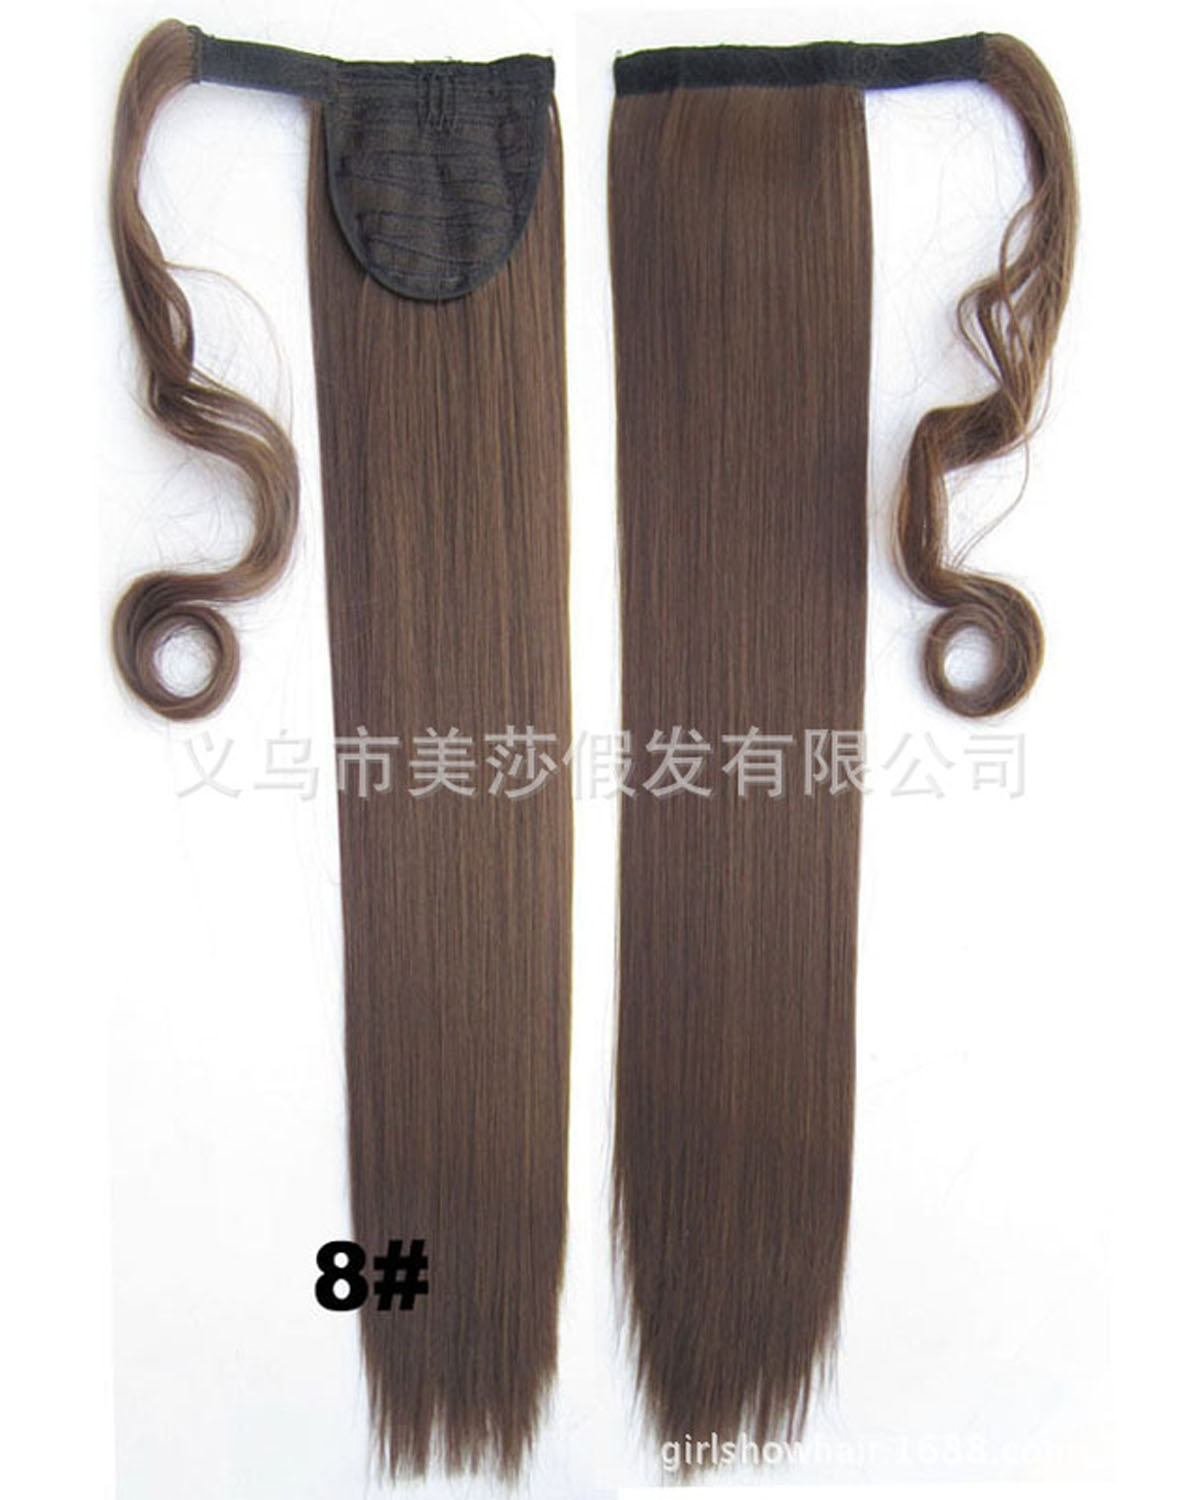 22 Inch Women Great Quality Straight and Long Wrap Around Synthetic Hair Ponytail 8#